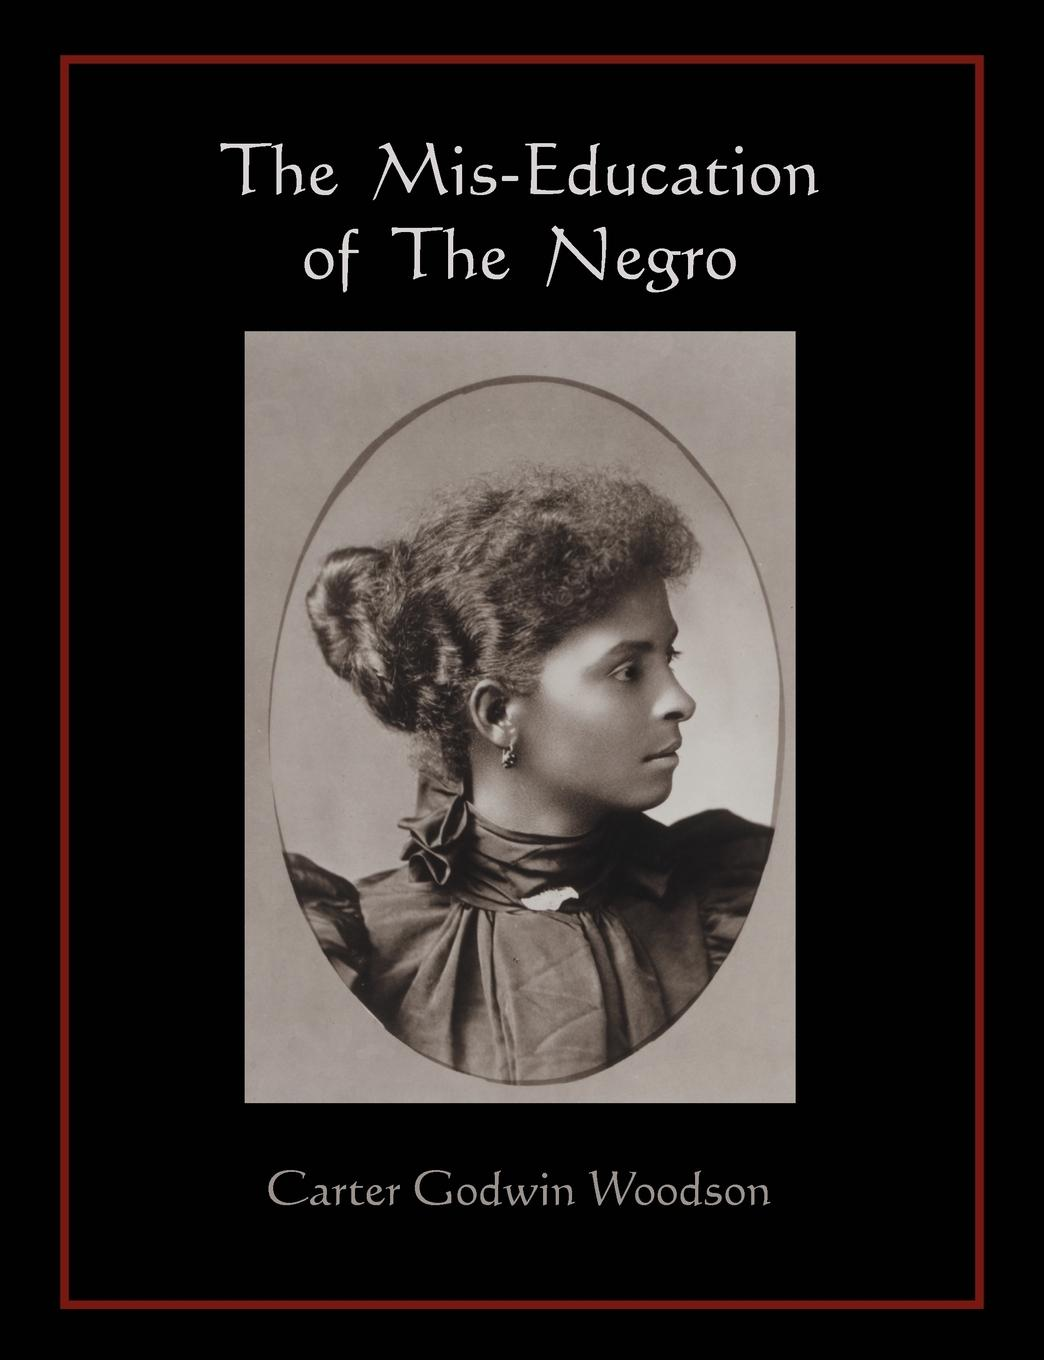 The Mis-Education of The Negro  Carter Godwin Woodson  Taschenbuch  Paperback  Englisch  2010 - Woodson, Carter Godwin